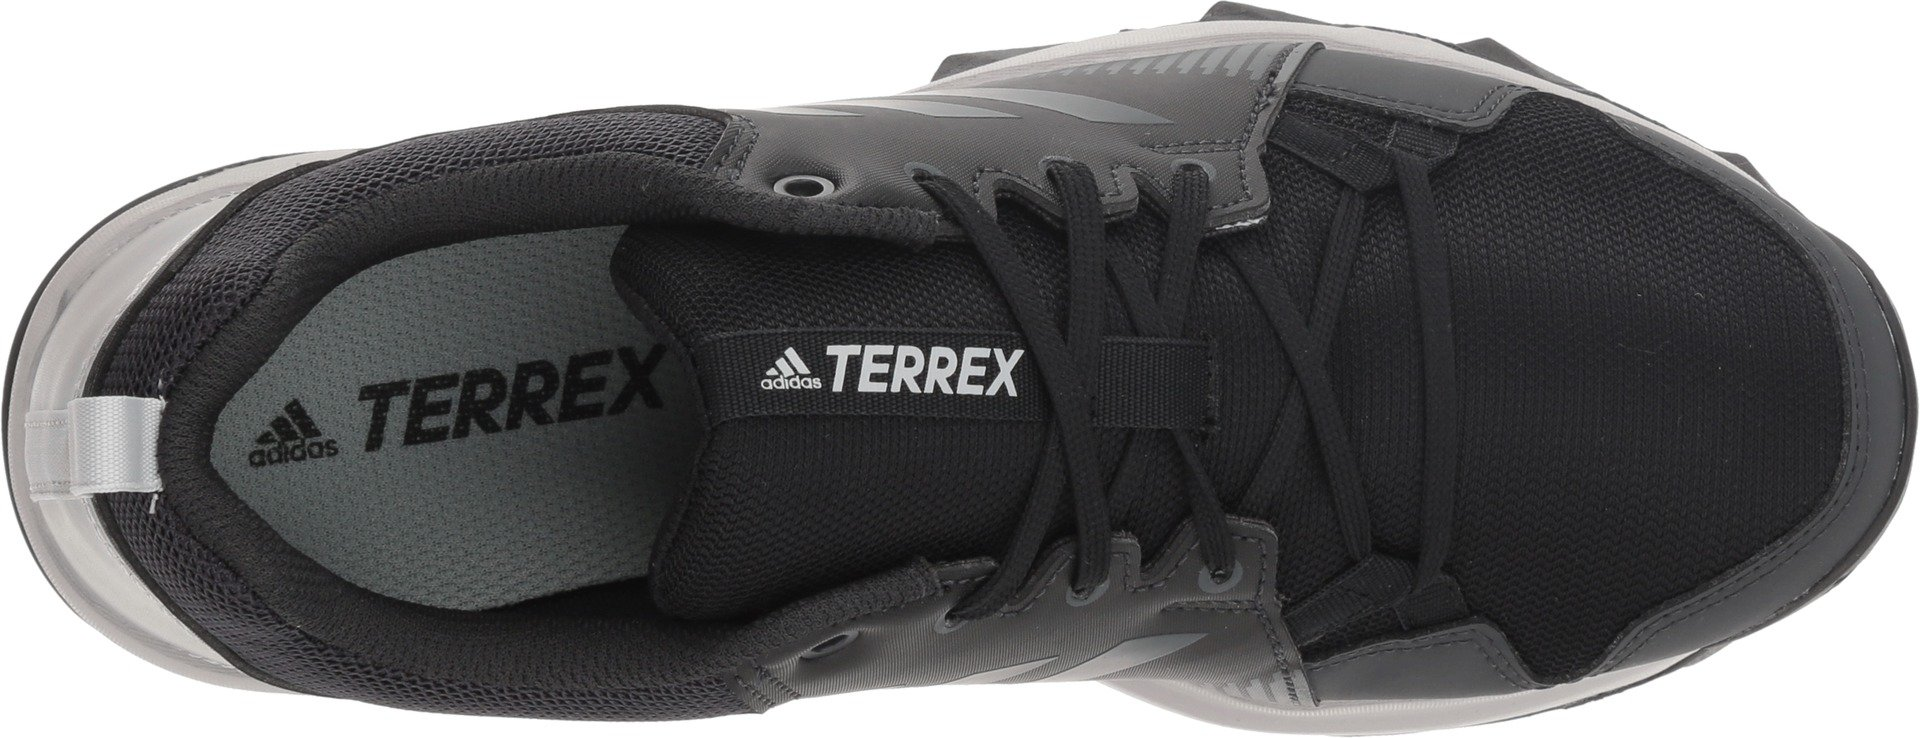 adidas outdoor Women's Terrex Tracerocker W, Black/Carbon/Grey Two, 5.5 B US by adidas outdoor (Image #2)